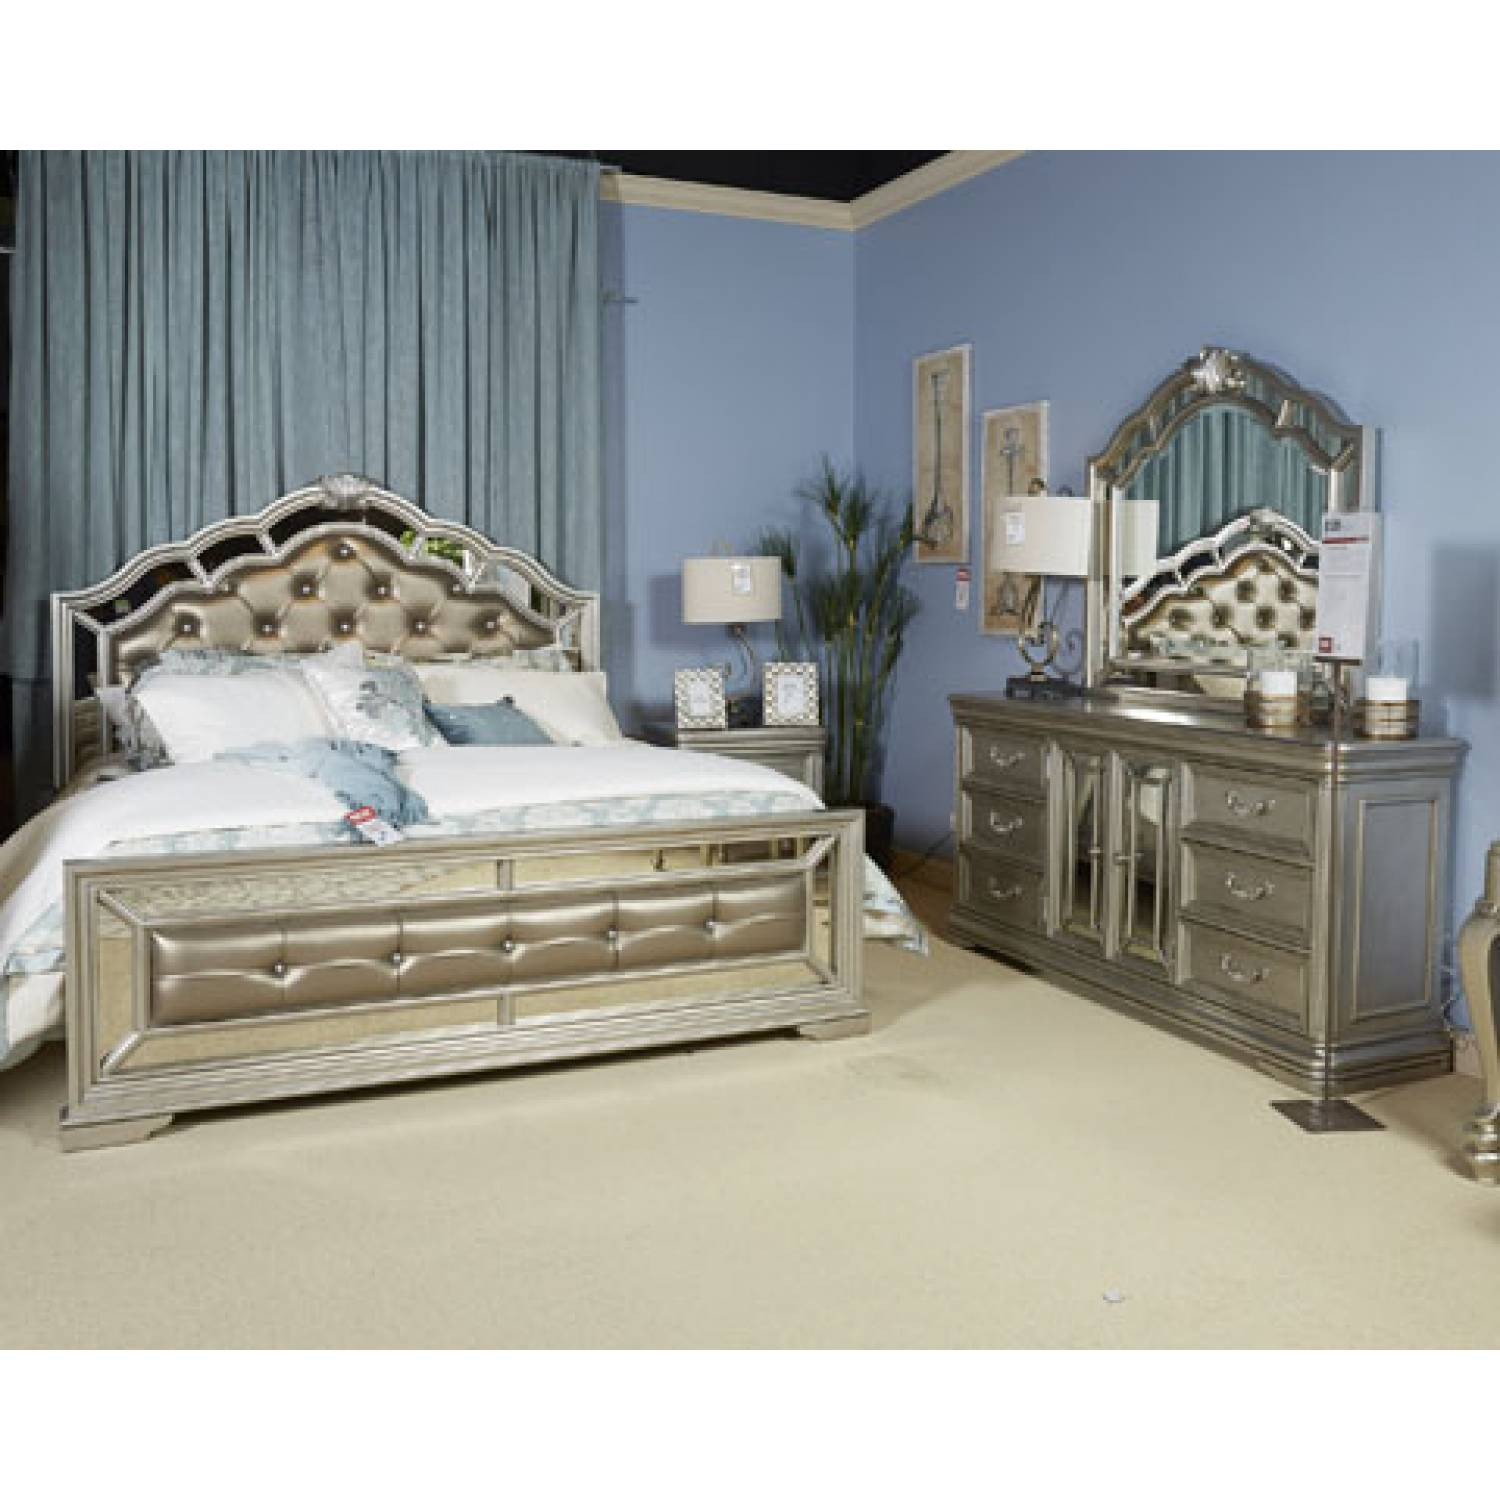 Birlanny Queen Upholstered Bedroom Sets 4 Piece